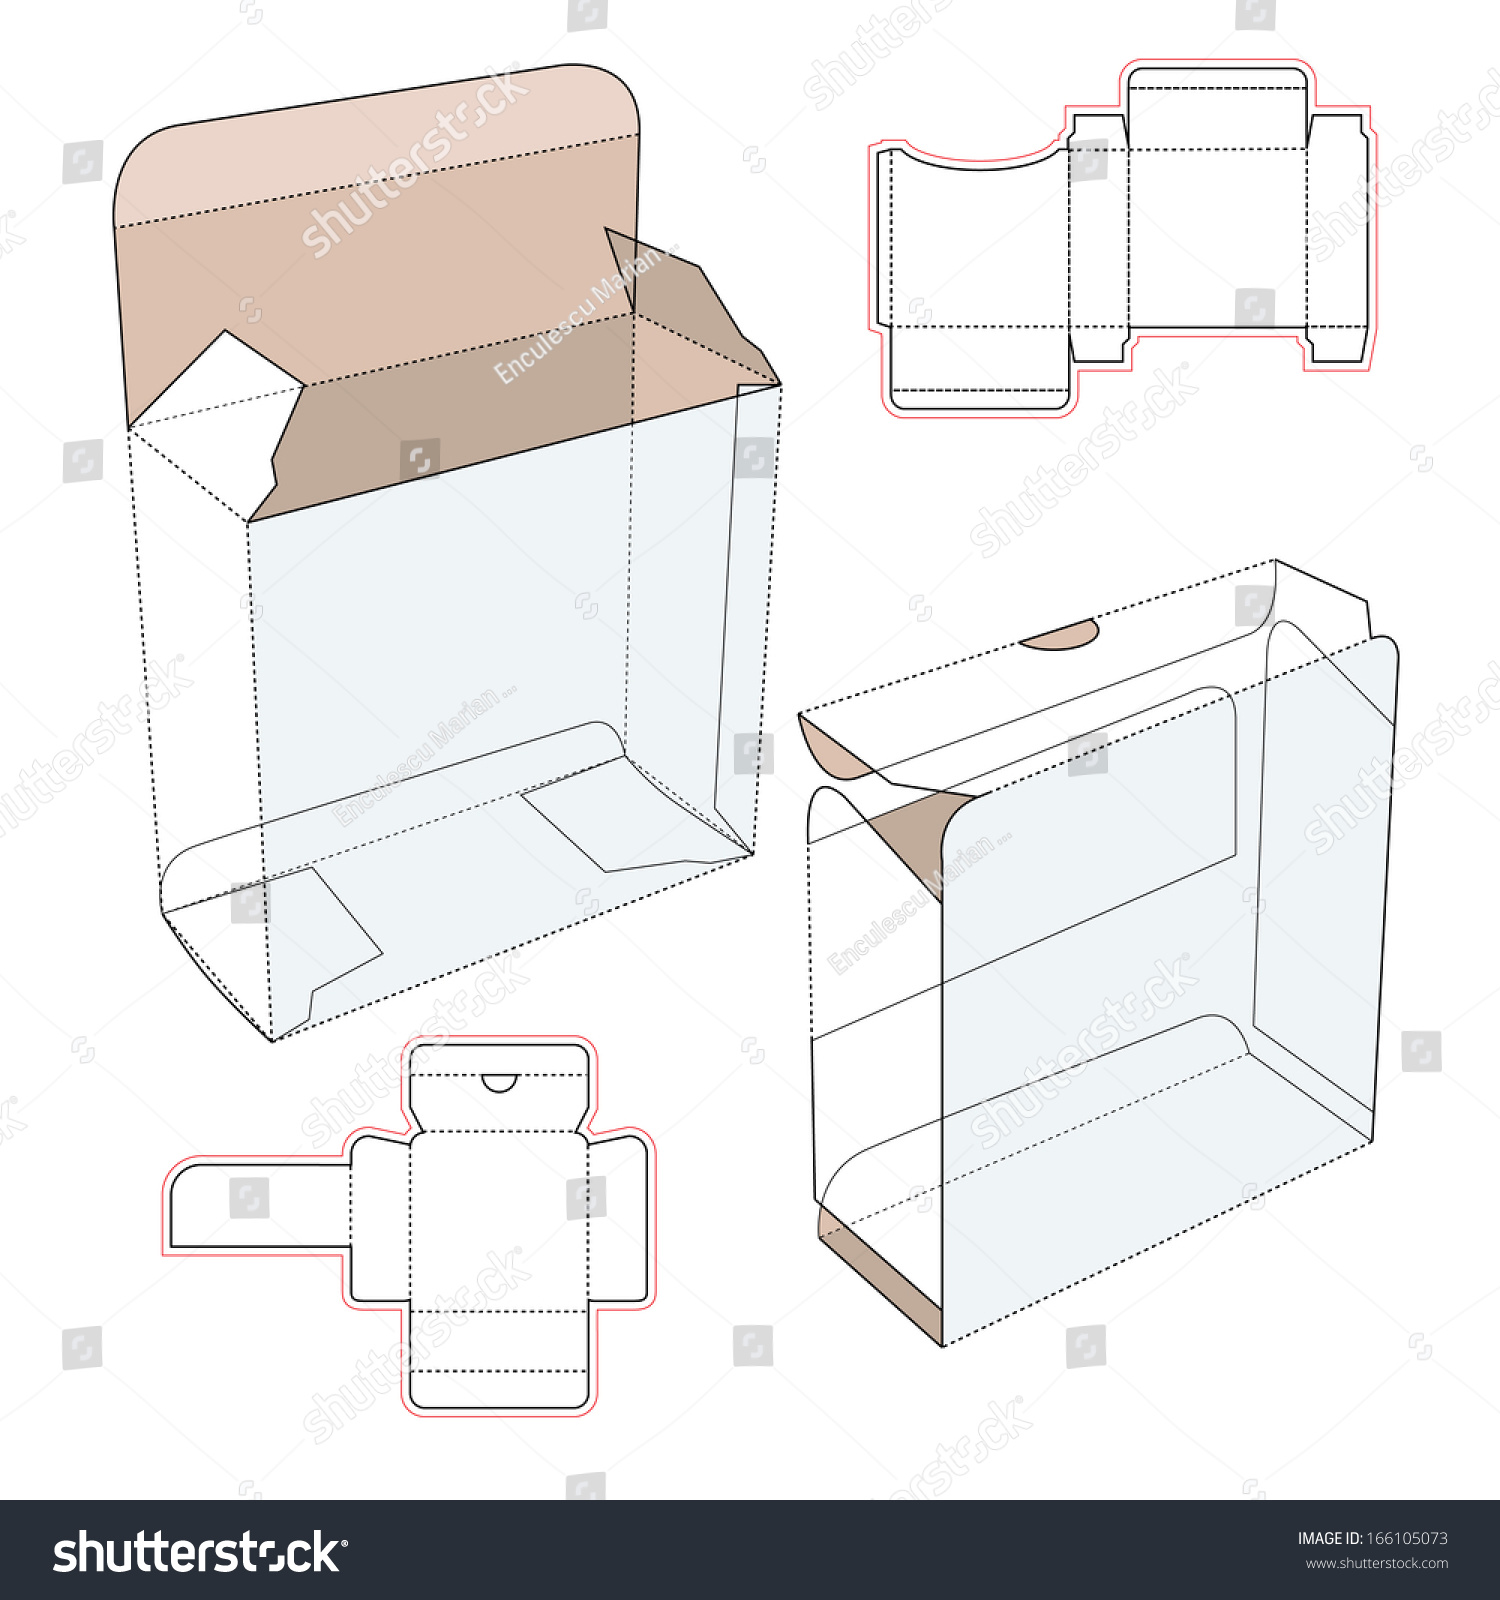 perfume cardboard box blueprint template stock vector 166105073 shutterstock. Black Bedroom Furniture Sets. Home Design Ideas